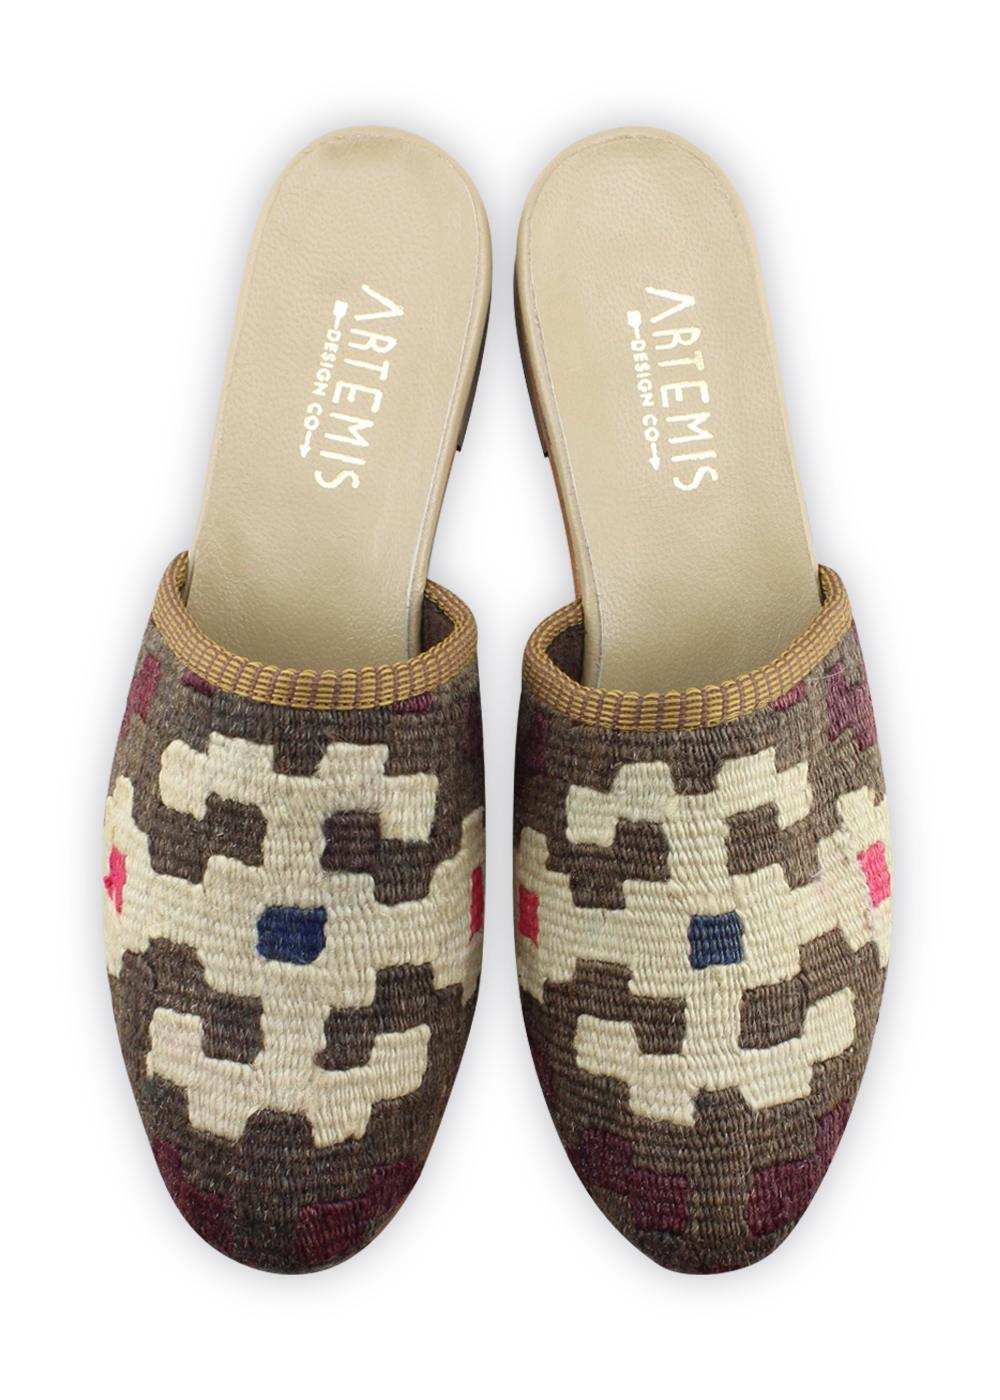 Women's Shoes - Women's Kilim Slides - Size 41